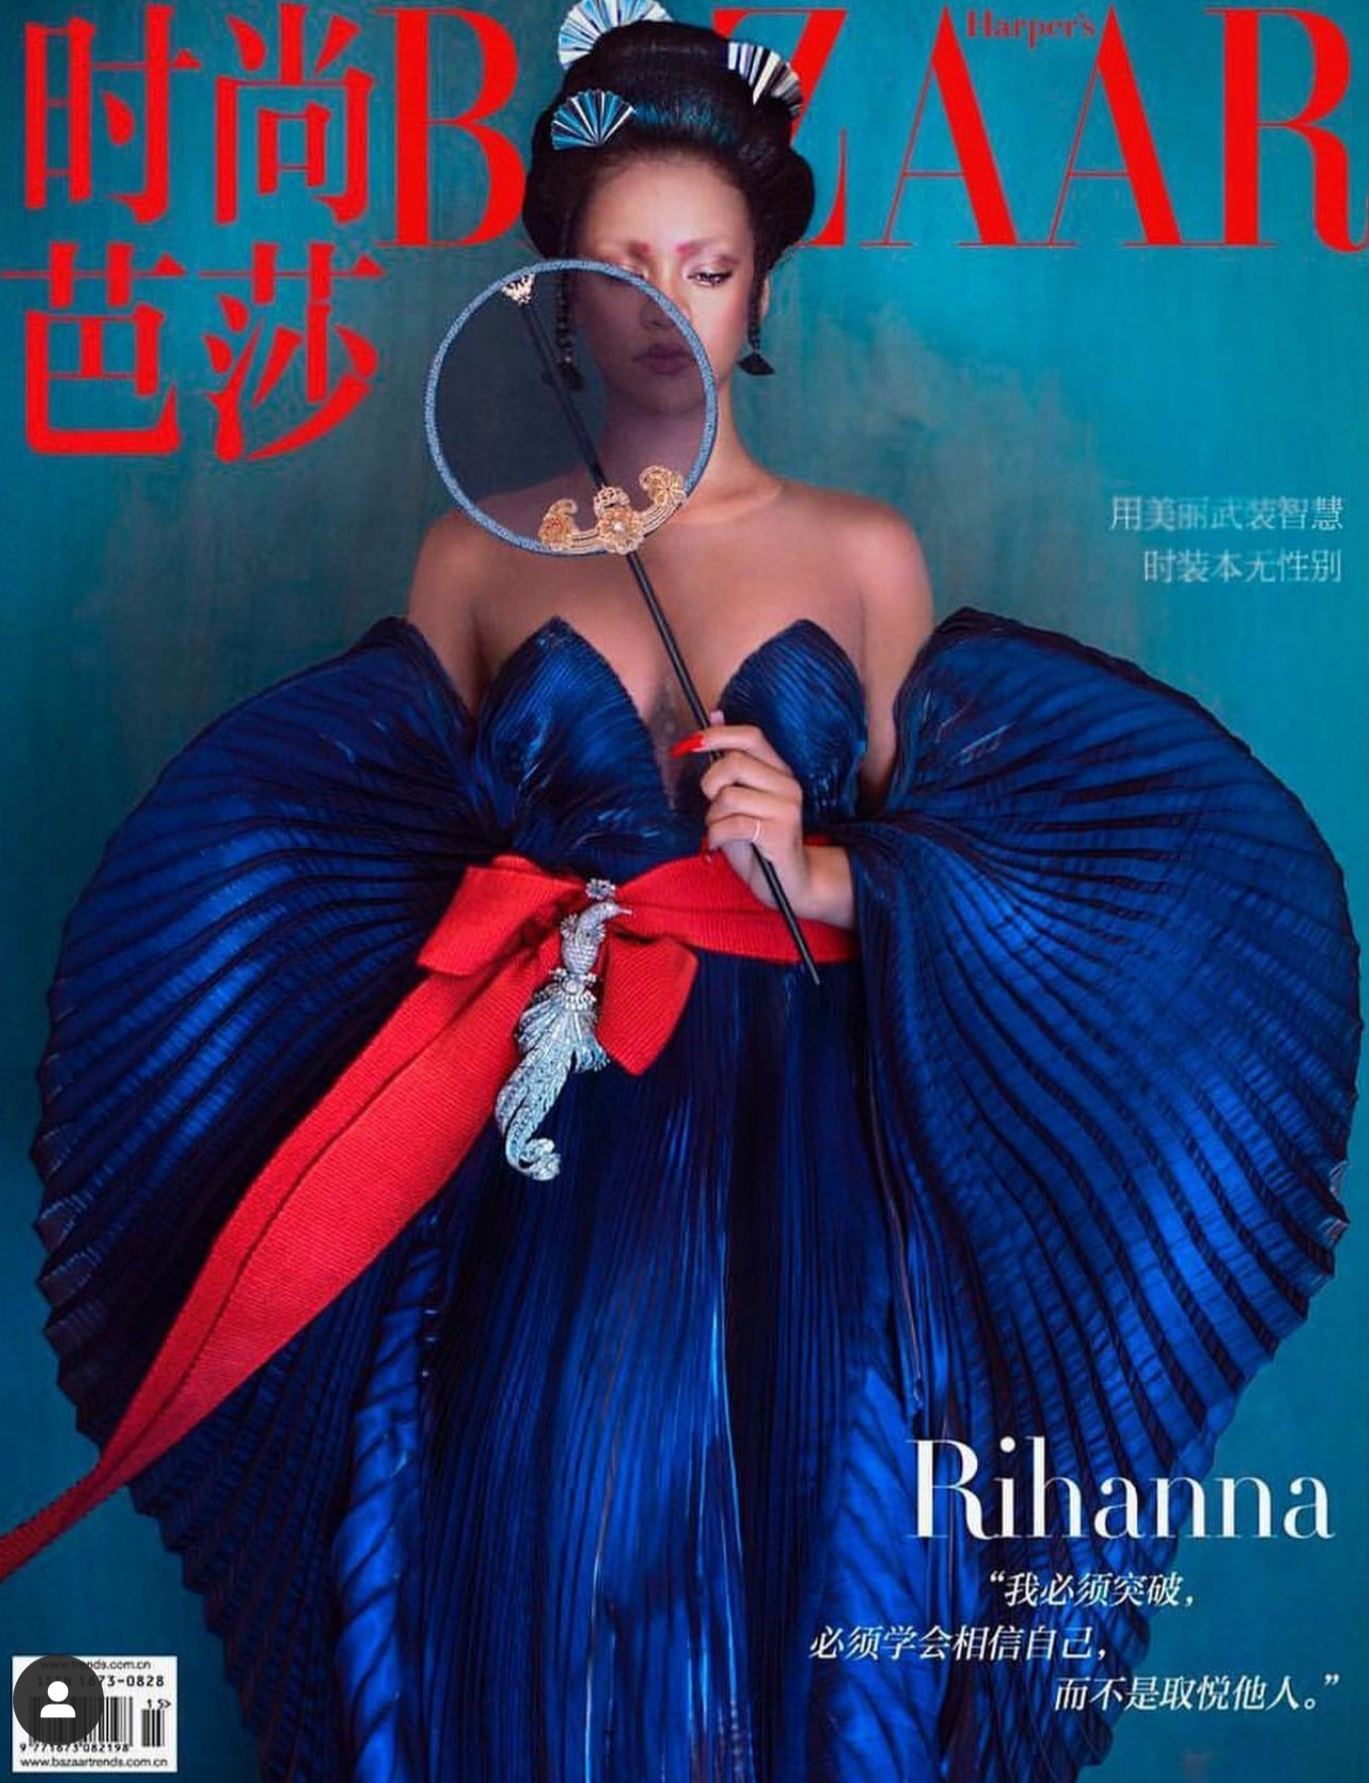 Rihanna on the Cover of August 2019  Harper's Bazaar  / @Rihanna August Issue  # harpersbazaarCHINA   on stands July 15th!  @ kimmiekyees    @ PriscillaOno    @ yusefhairnyc    @ Chenmaner   Chief Editors: Simona Sha, WeiTian Visual Direction: Xiaomu FAN